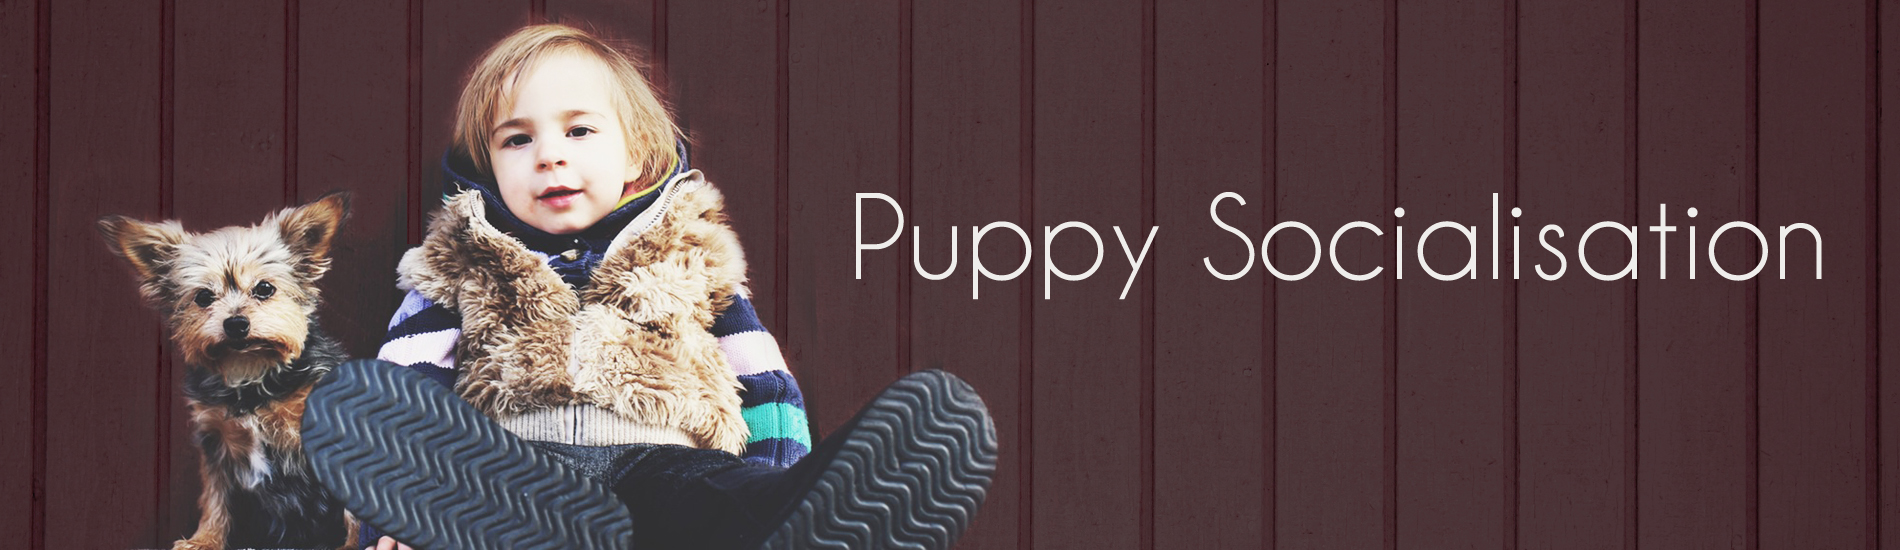 Puppy Socialisation slider